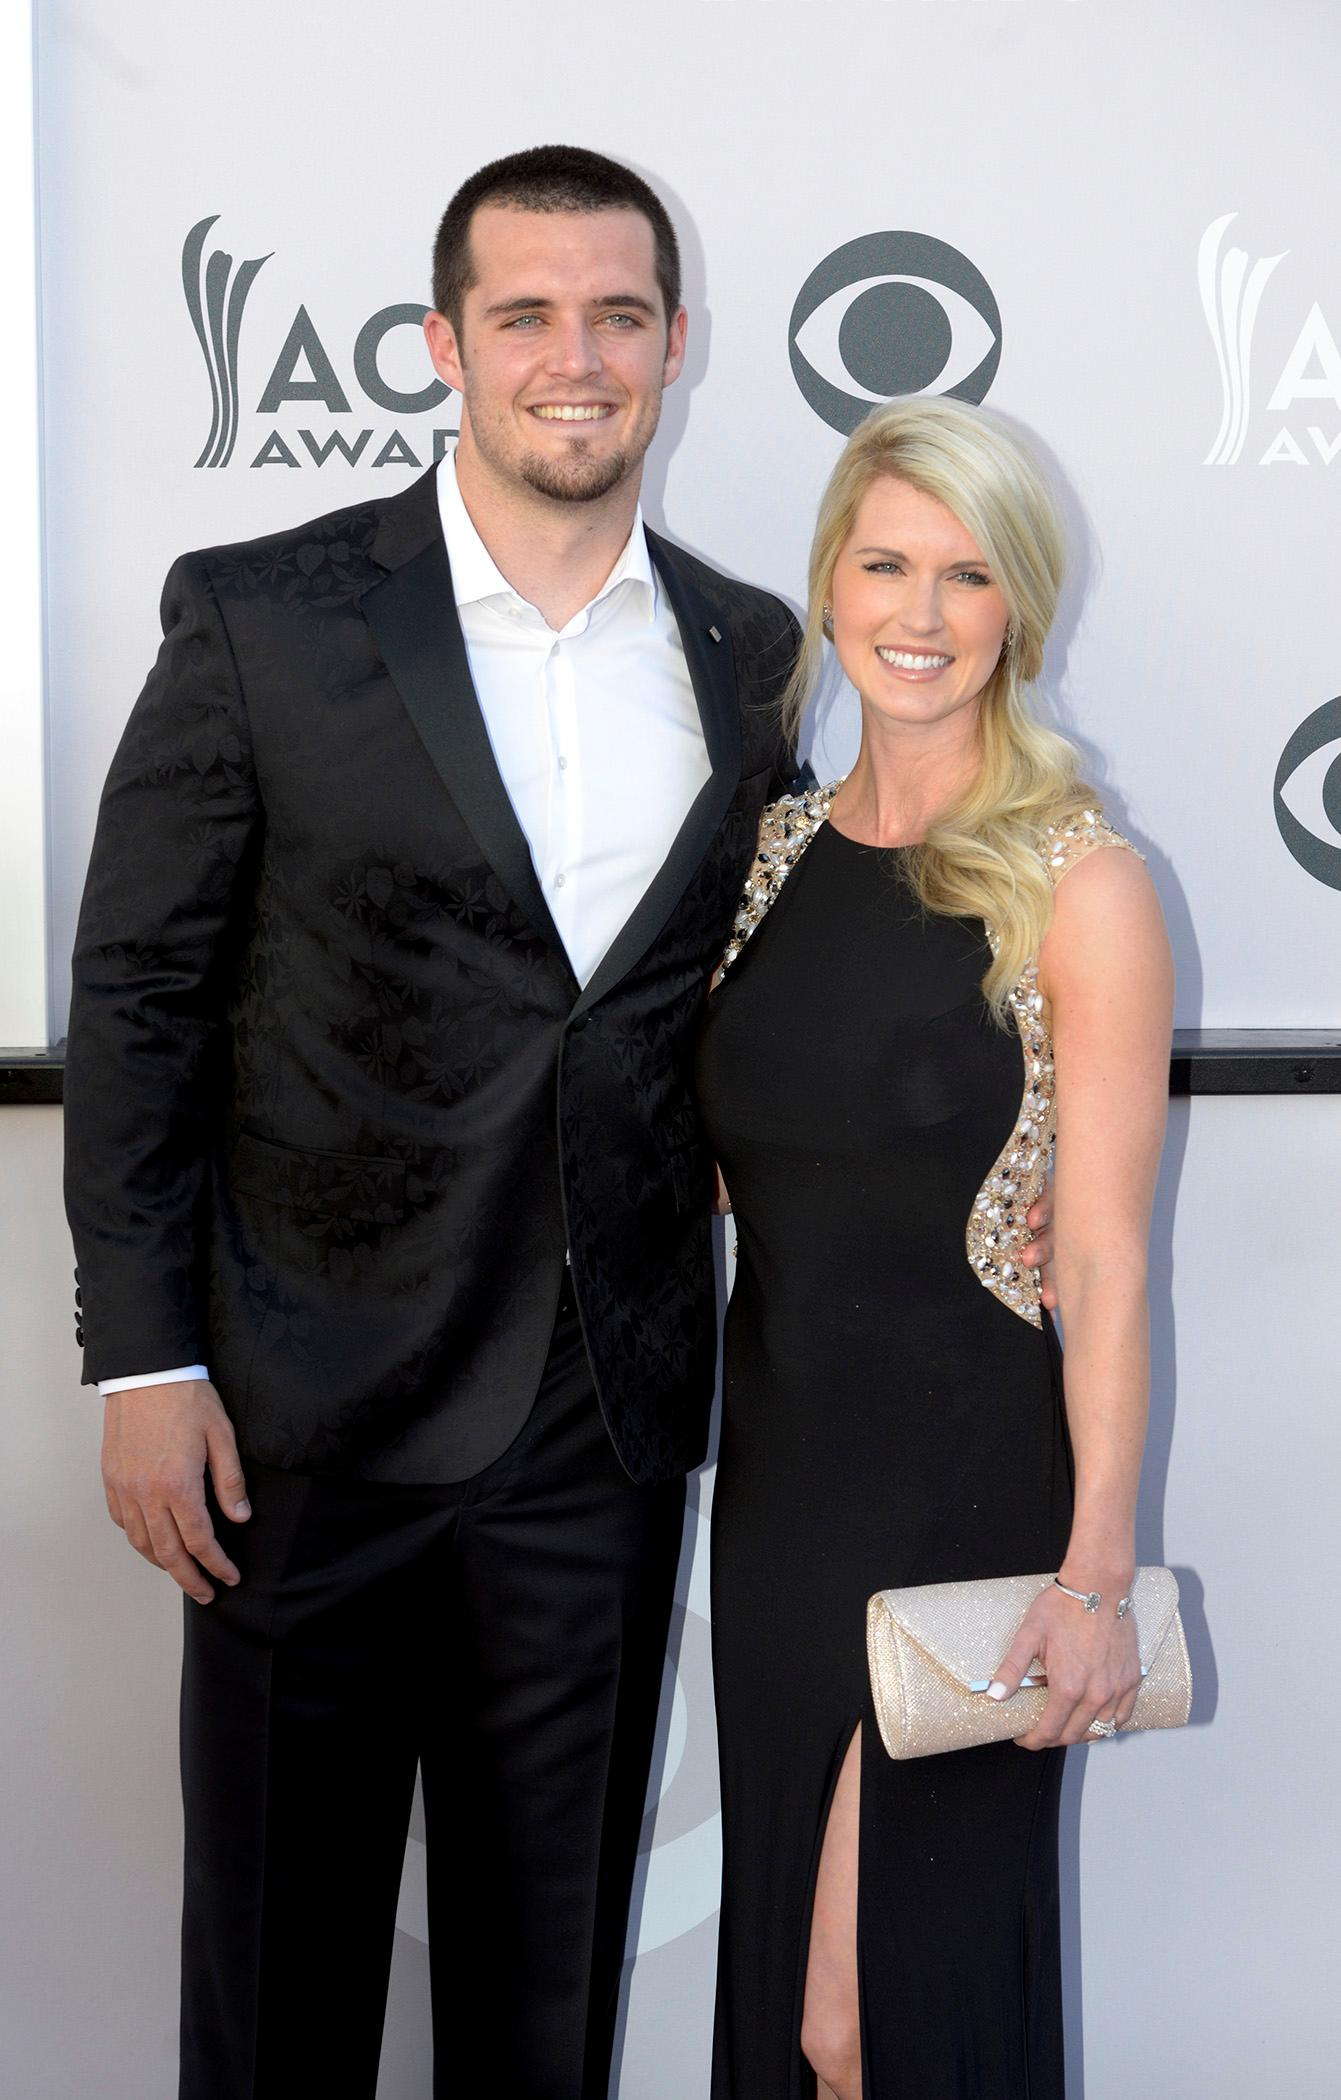 Derek Carr, quarterback for the Oakland Raiders and his wife Heather Neel walk the Academy of Country Music Awards red carpet at T-Mobile Arena. Sunday, April 2, 2017. (Glenn Pinkerton/ Las Vegas News Bureau)